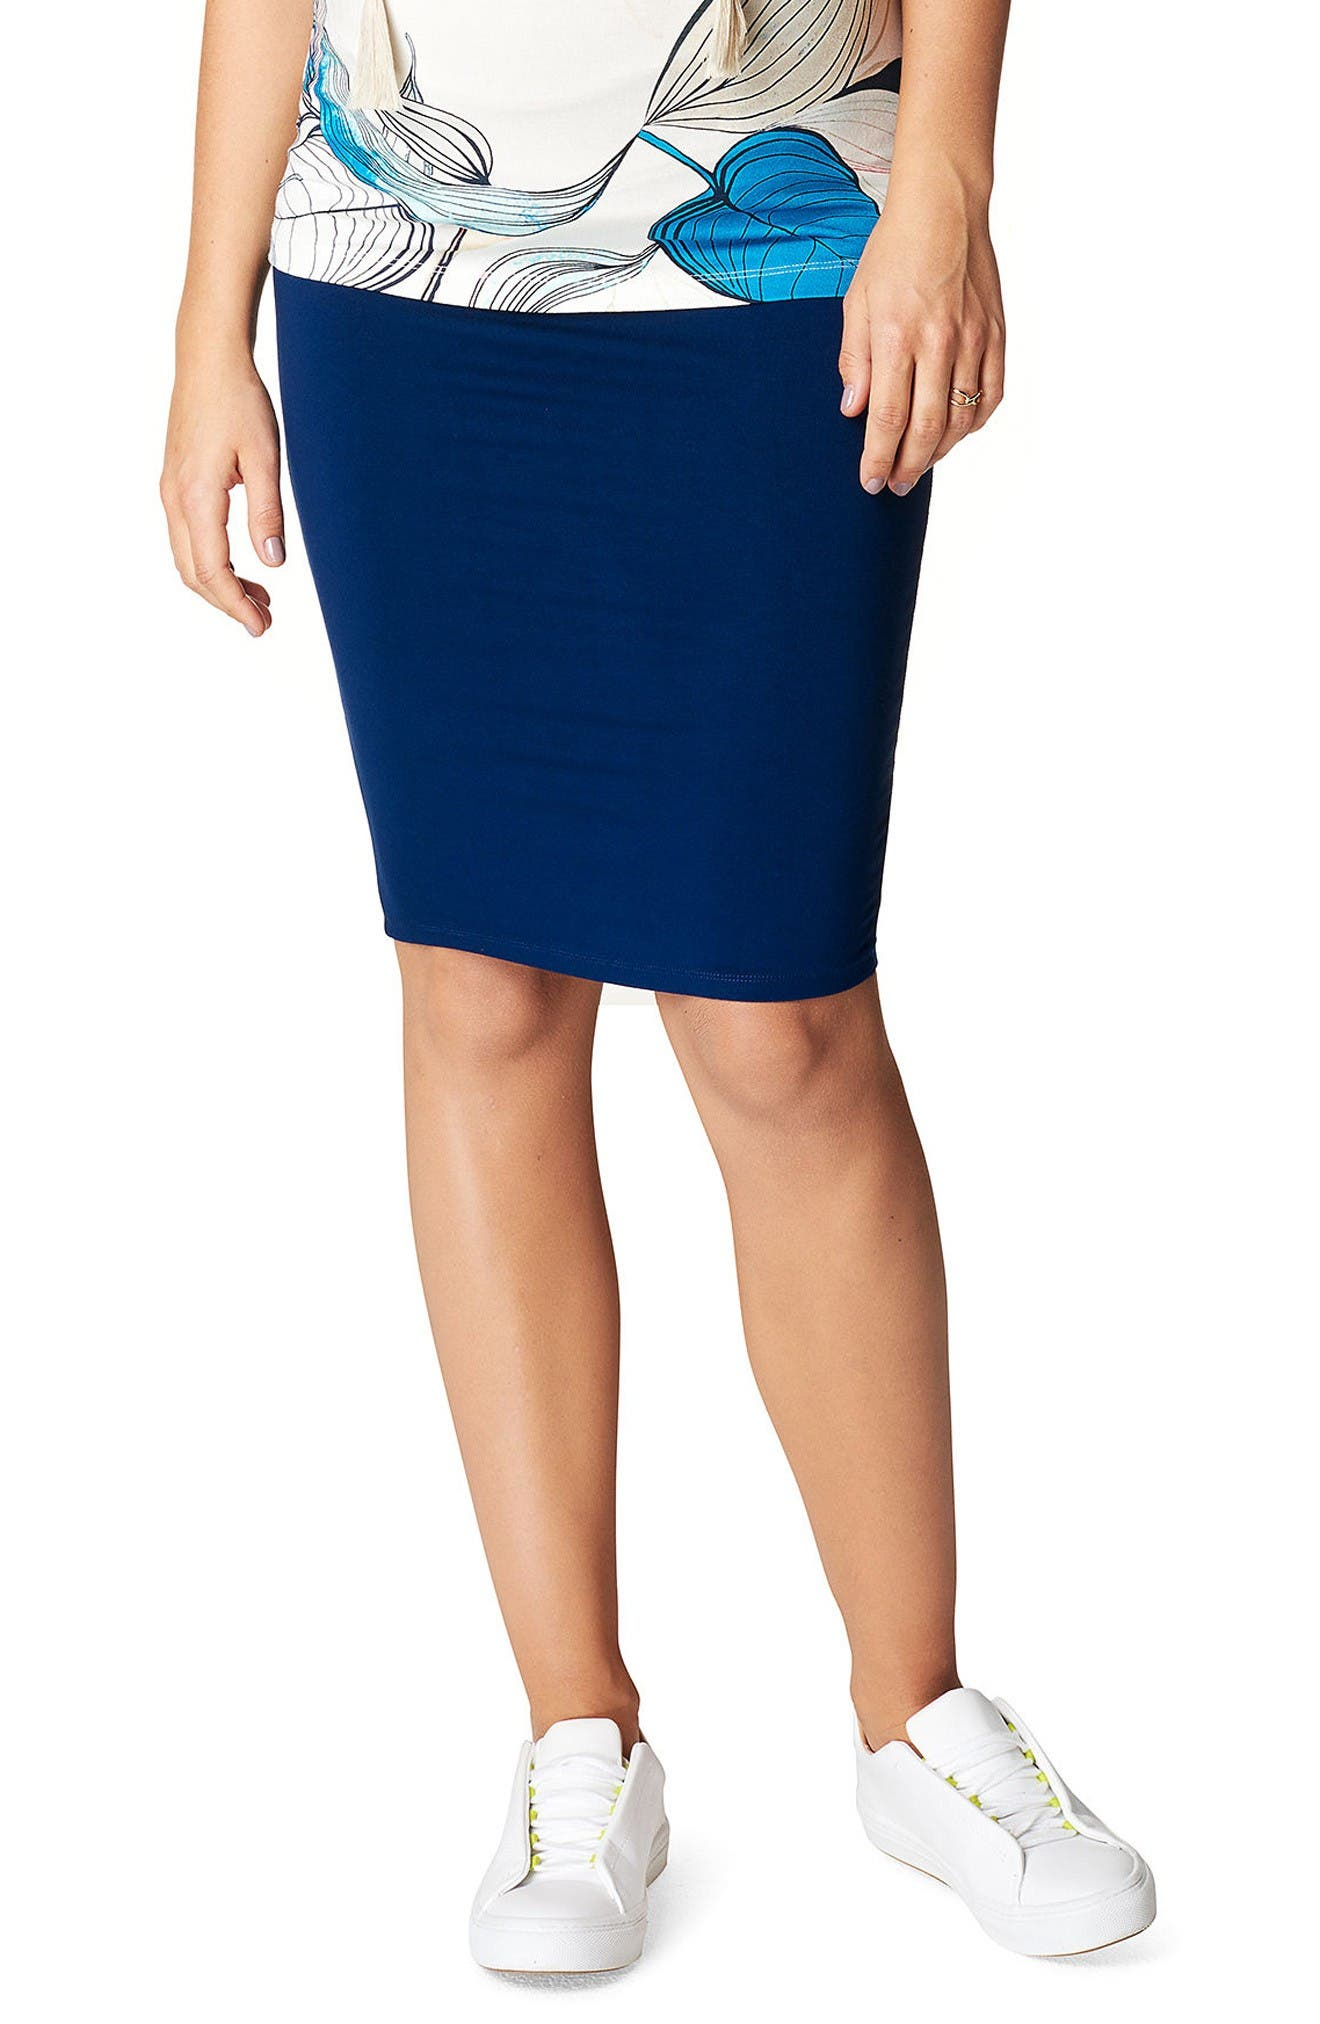 Vida Maternity Skirt,                         Main,                         color, Midnight Blue